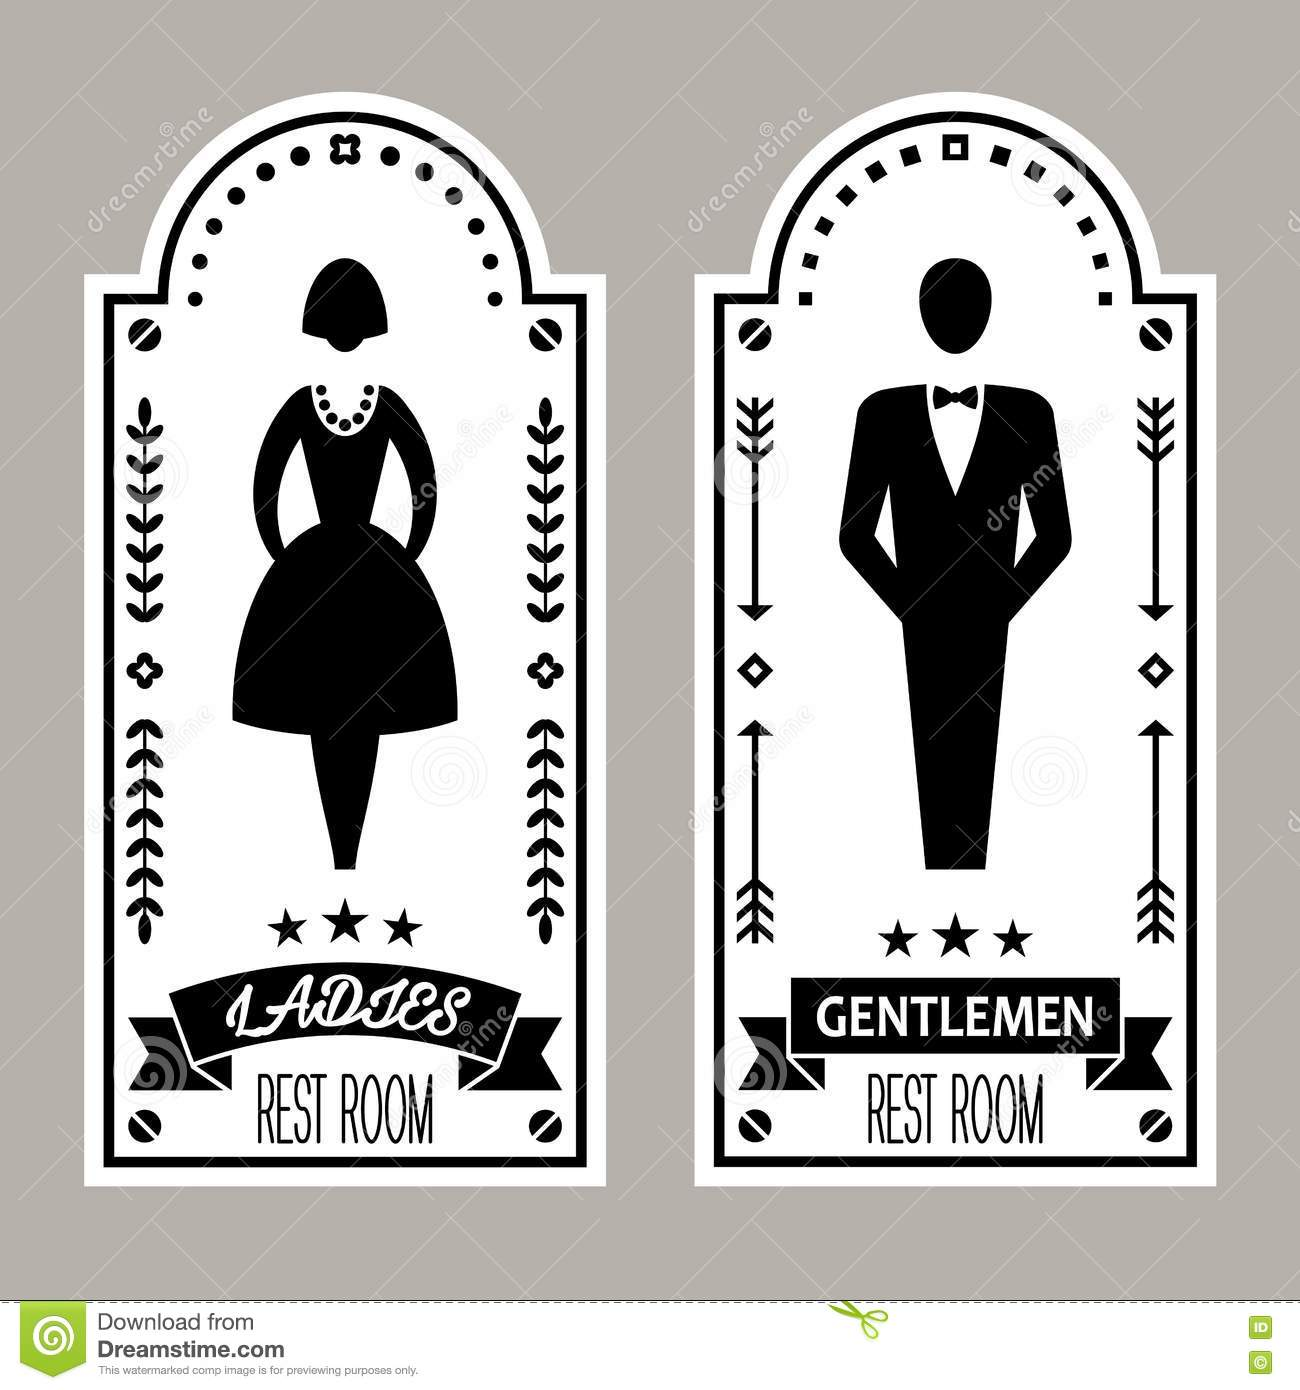 tirana family girls bathroom signs build collections restroom women we female sign ada image s womens